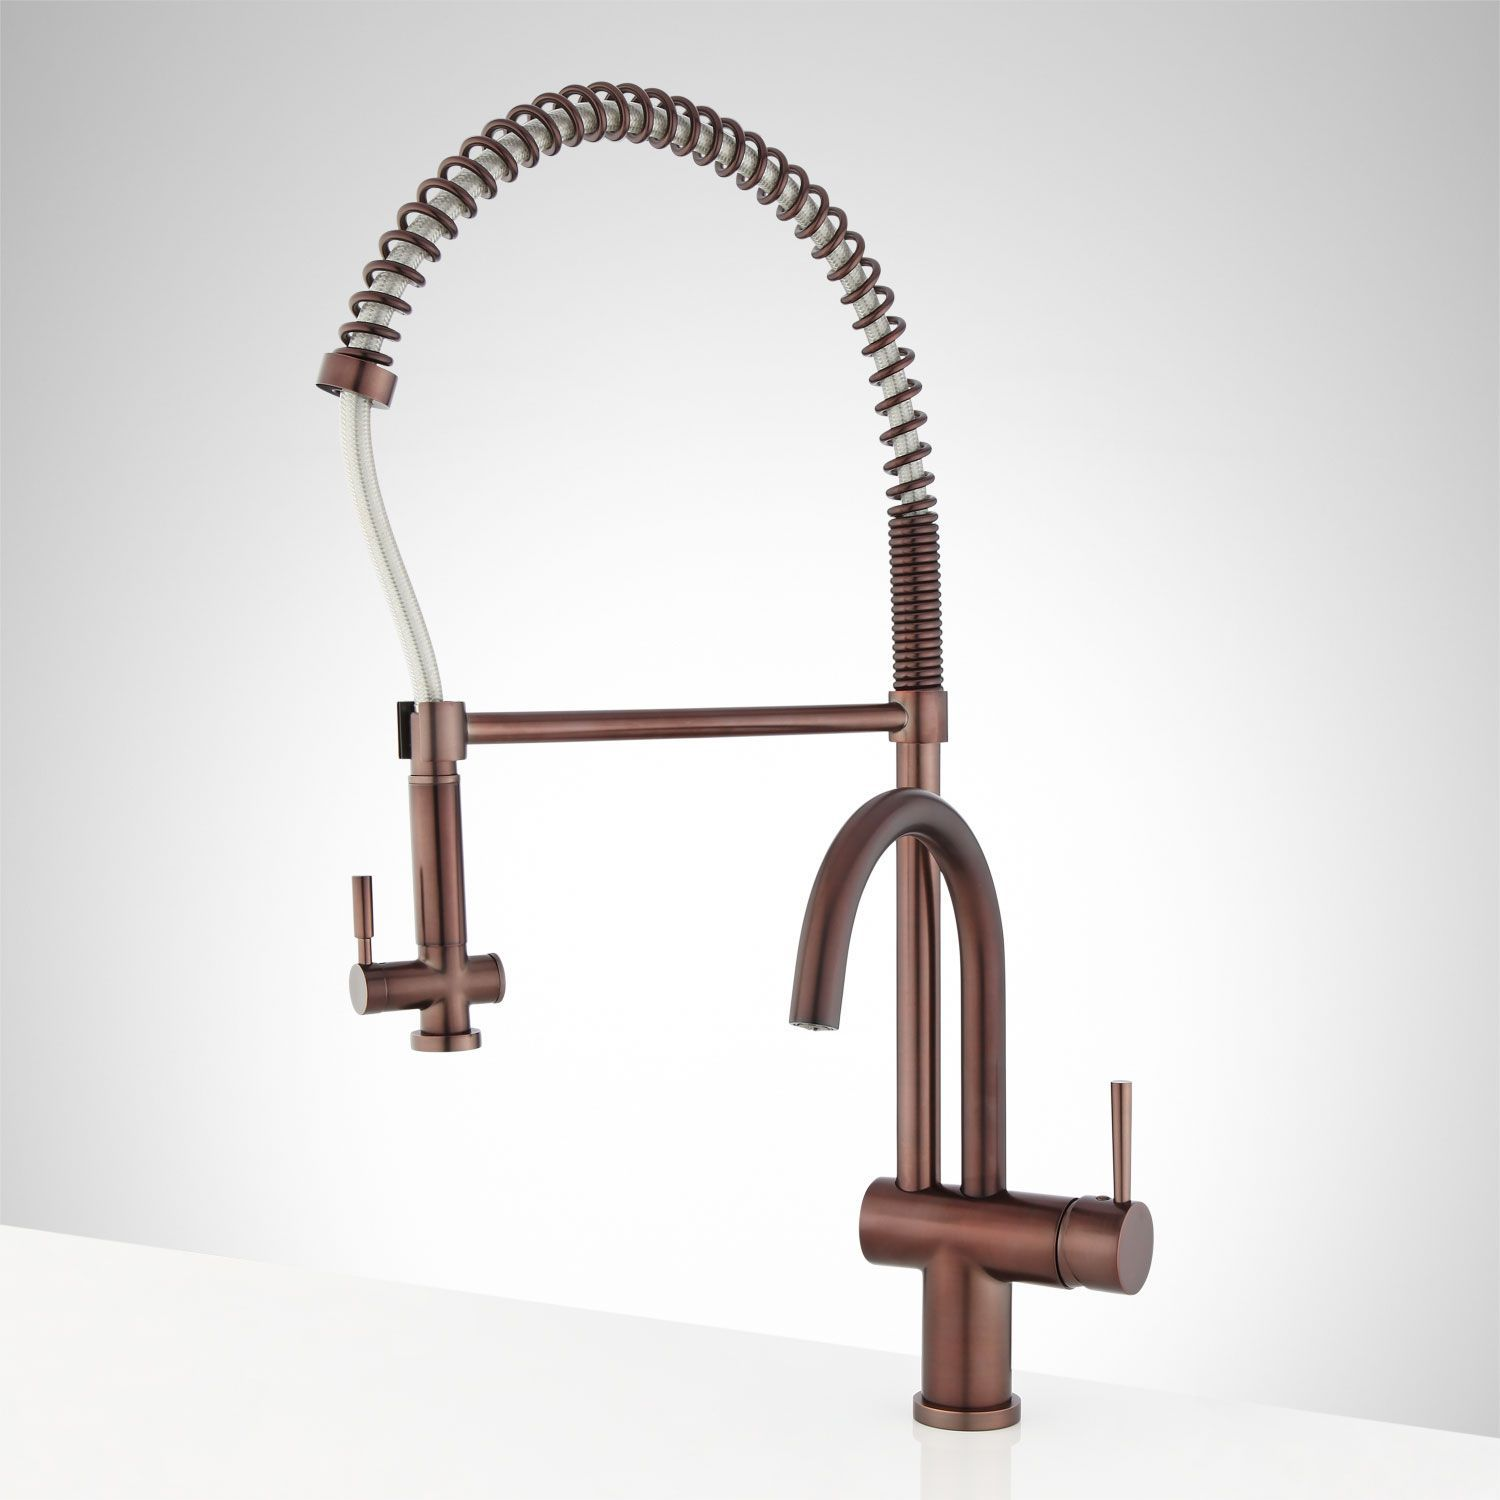 steyn kitchen faucet with spring spout pinterest kitchen faucets rh pinterest com Kitchen Faucets Product steyn kitchen faucet with spring spout reviews